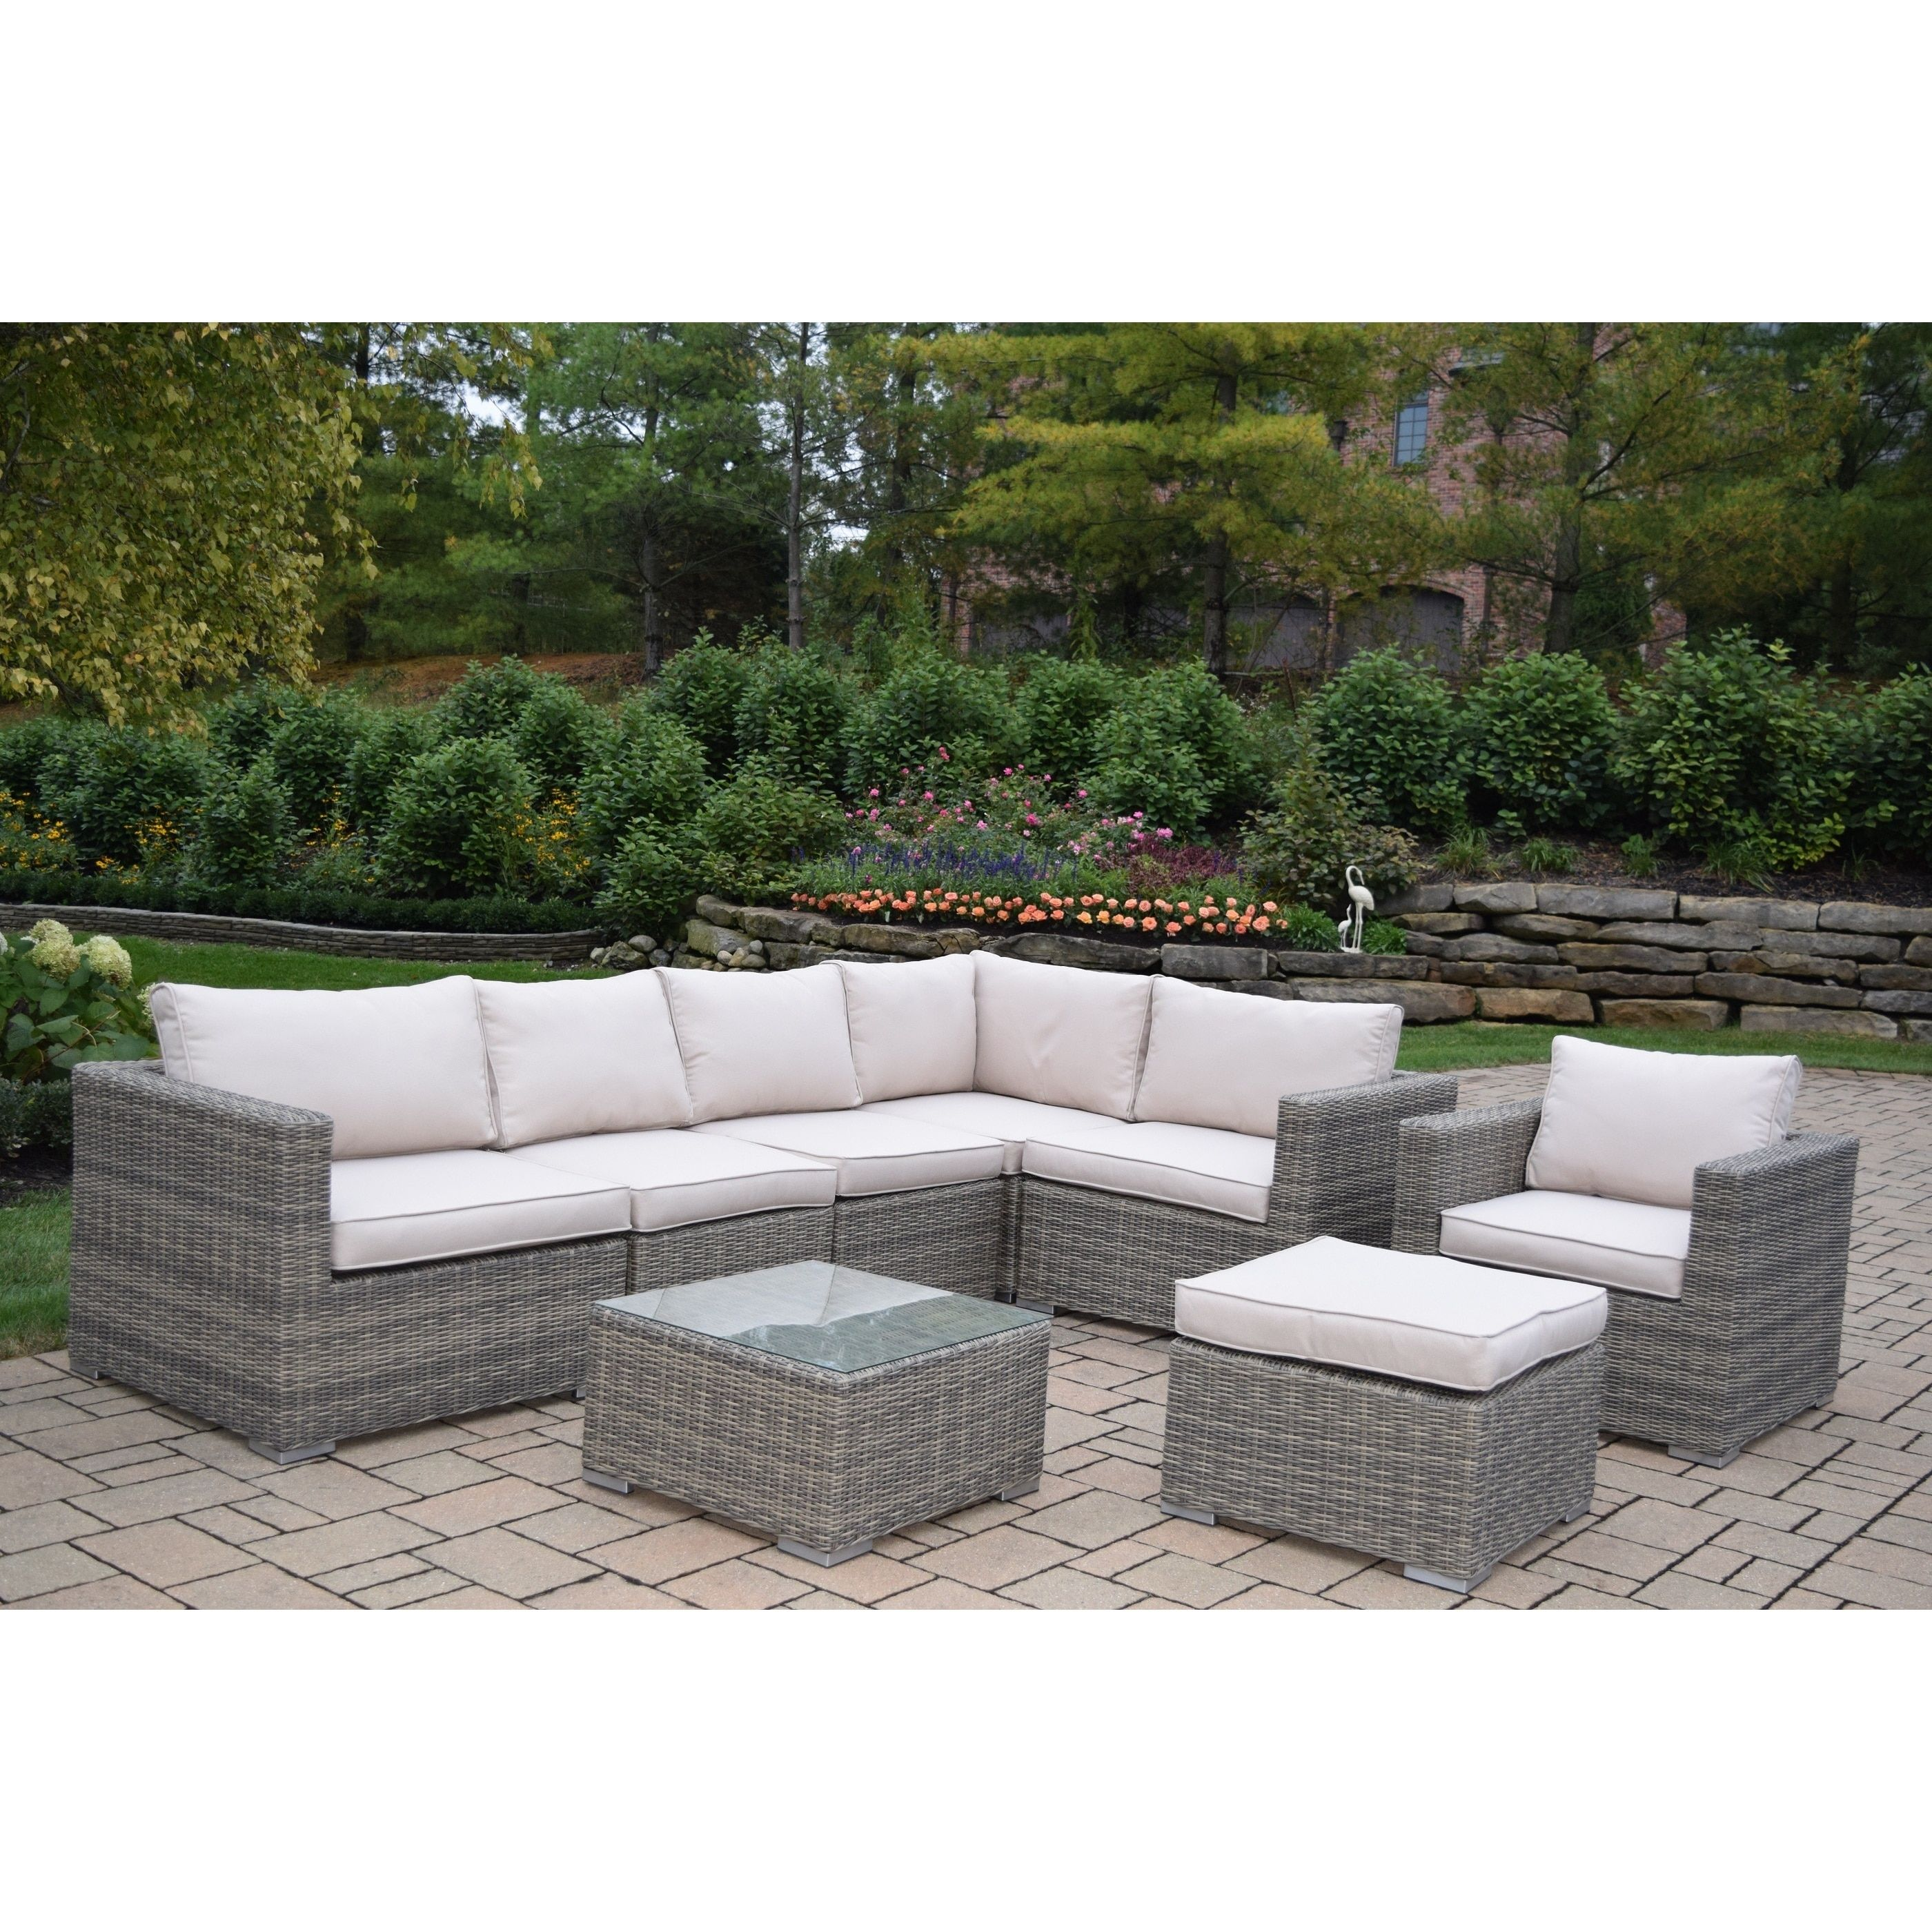 kalapana resin wicker 8 pc deep seat set with cushioned sectional